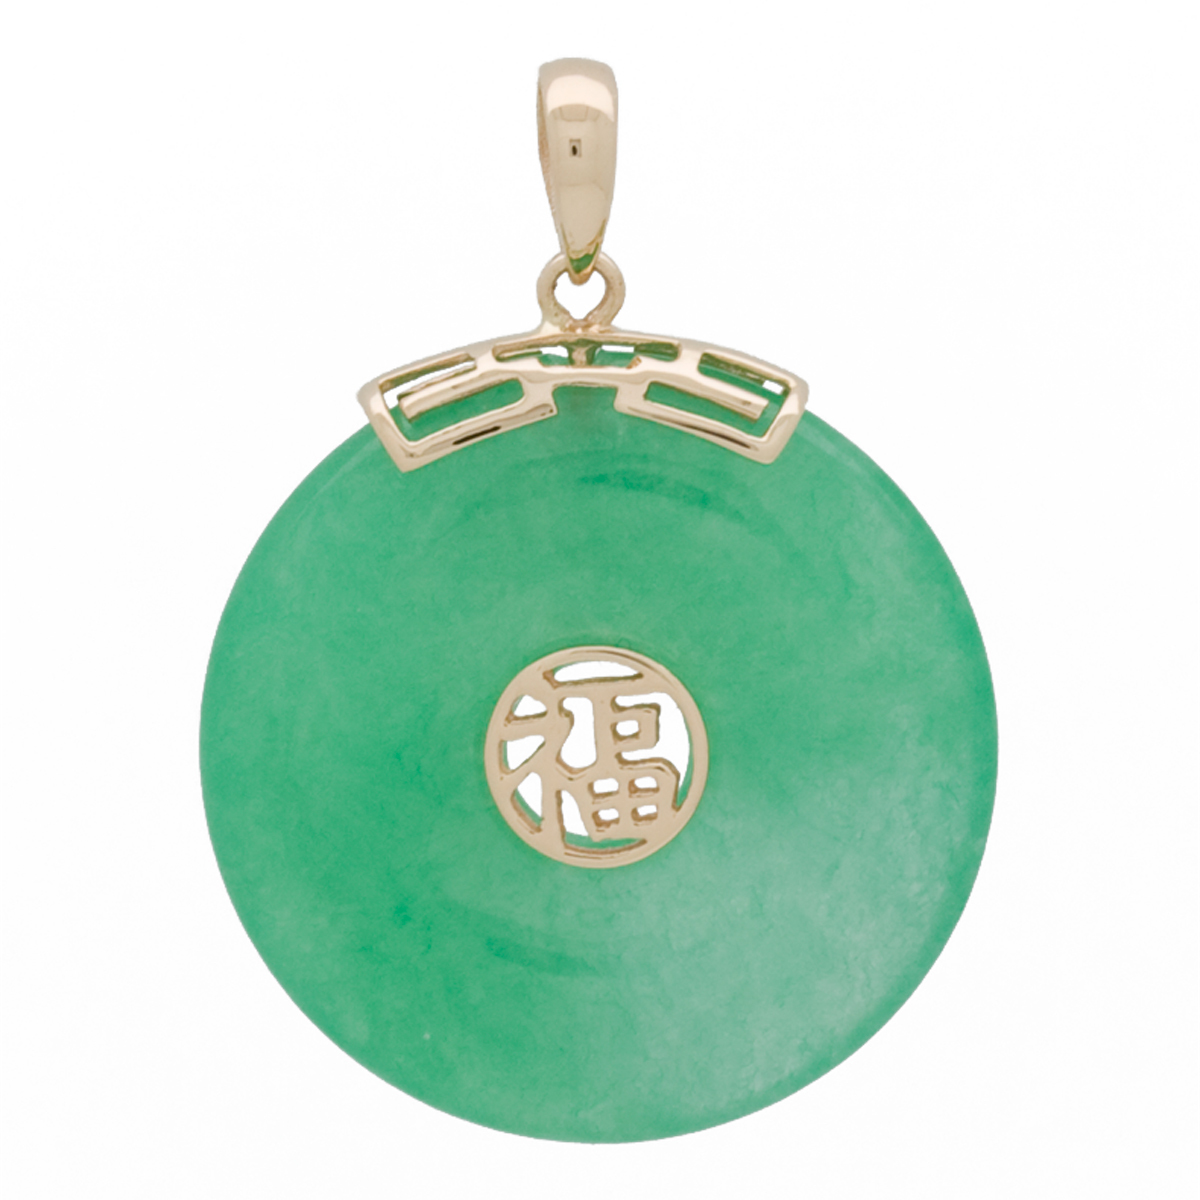 p tiffany fmt co constrain jade ed necklace id peretti pendants in sphere wid jewelry hei elsa fit necklaces green